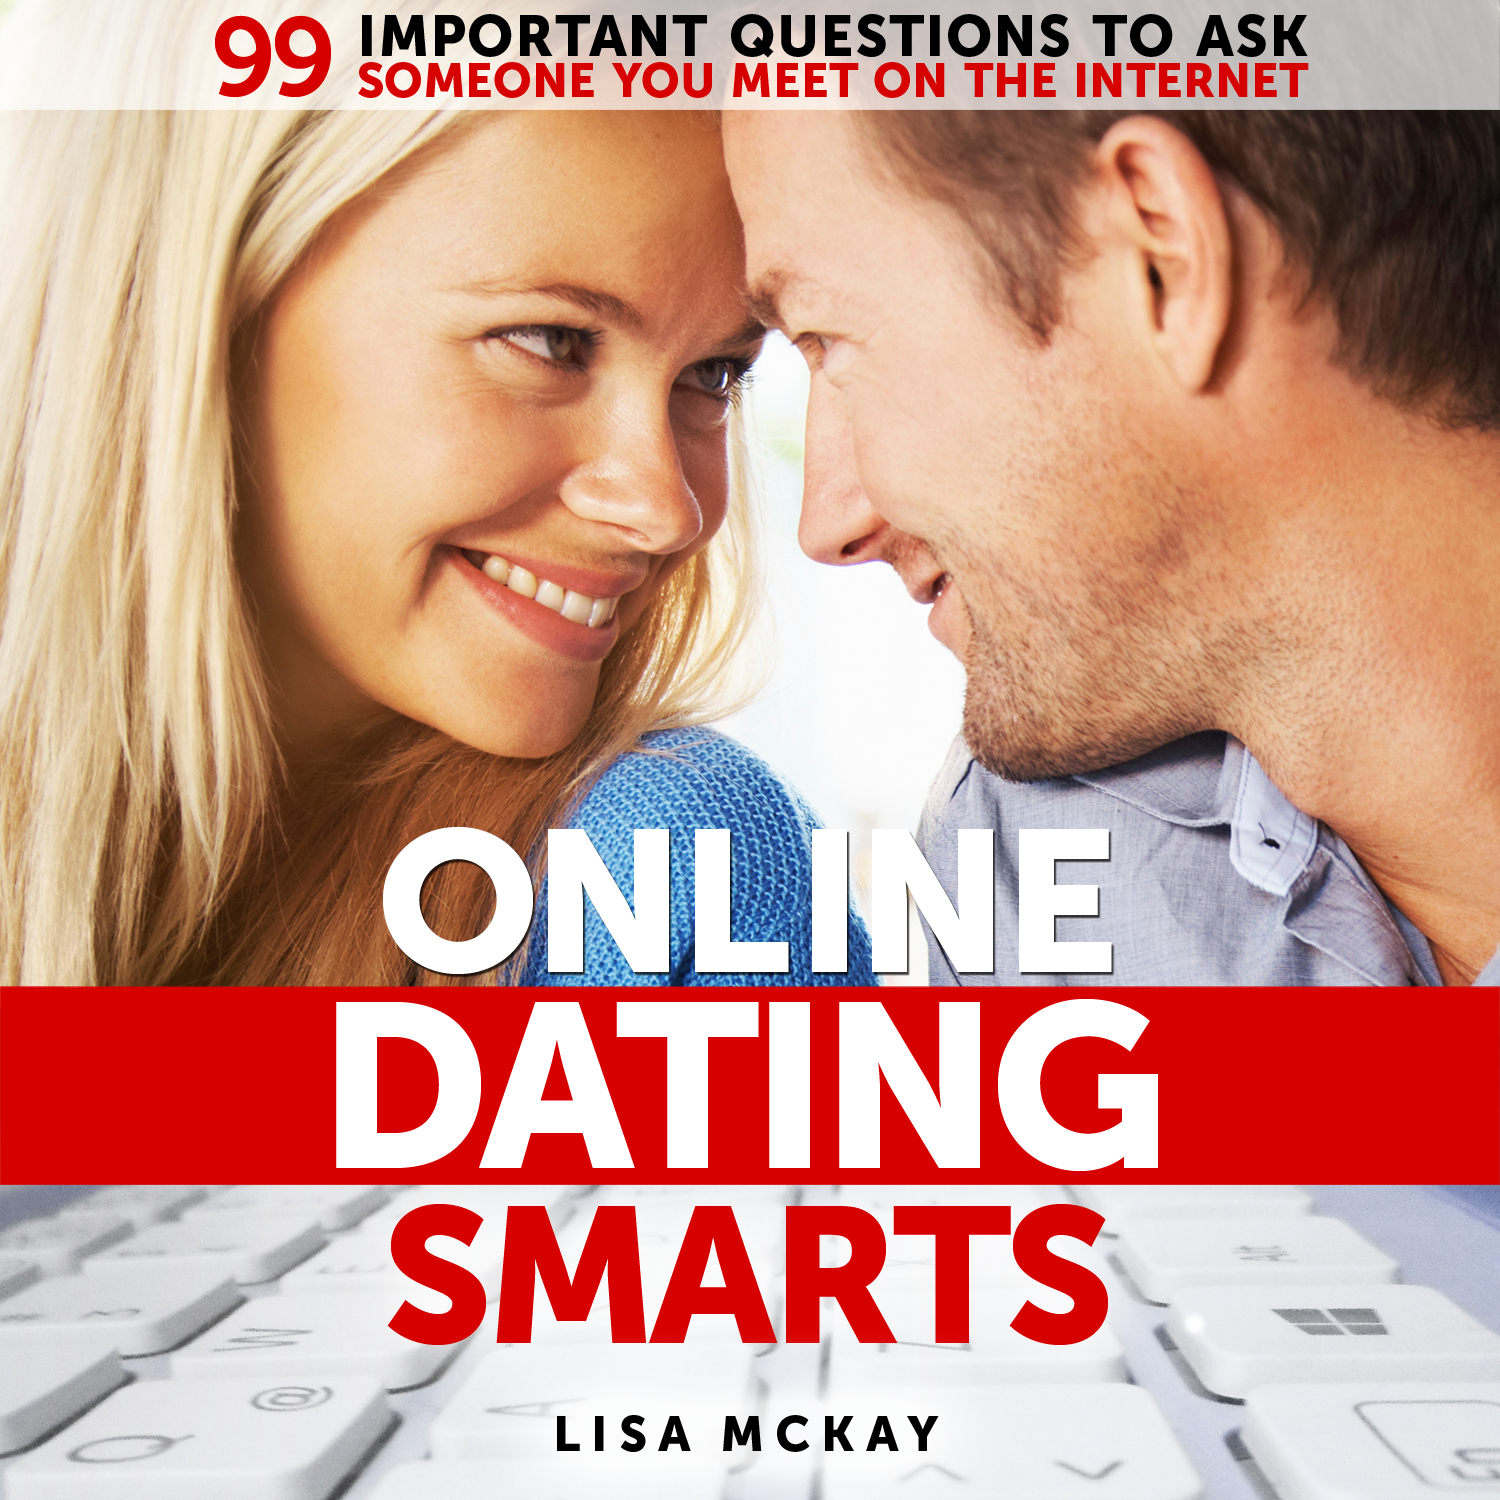 What questions to ask on online dating #5